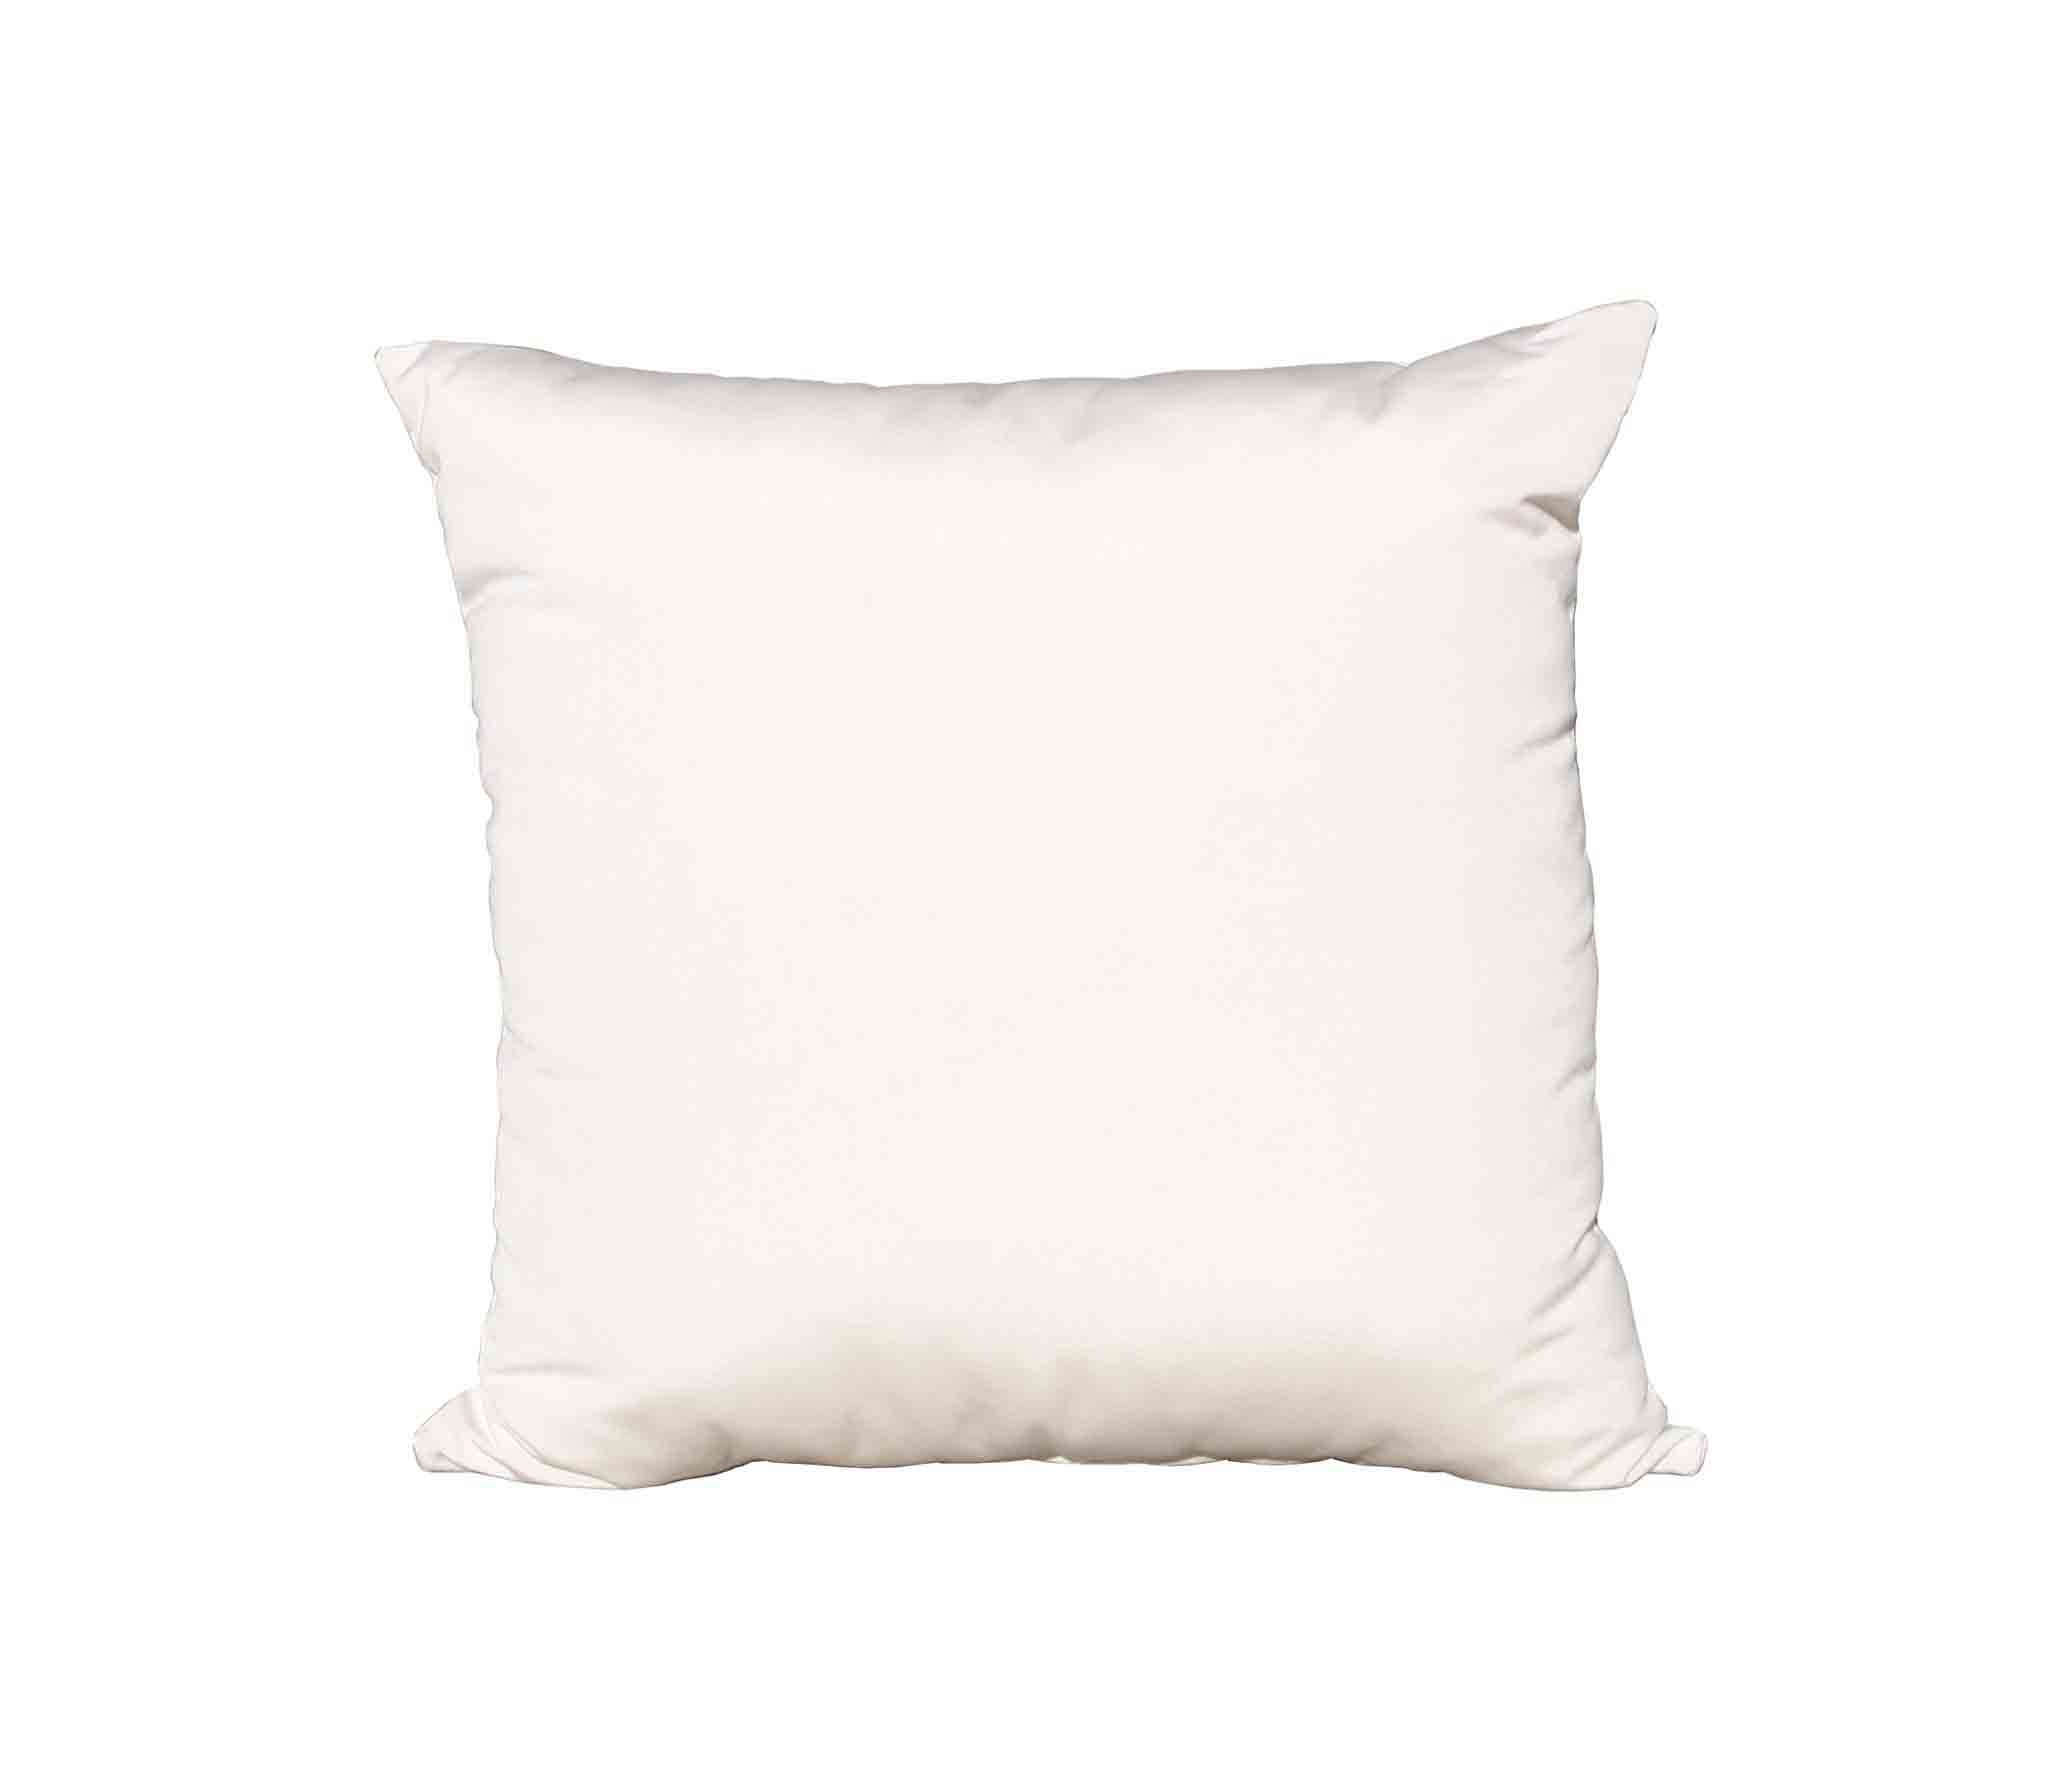 CabanaCoast Furniture Patio Furniture Cushions U0026 Outdoor Pillows : 20 X 20  Pillow CabanaCoast Furniture 202020